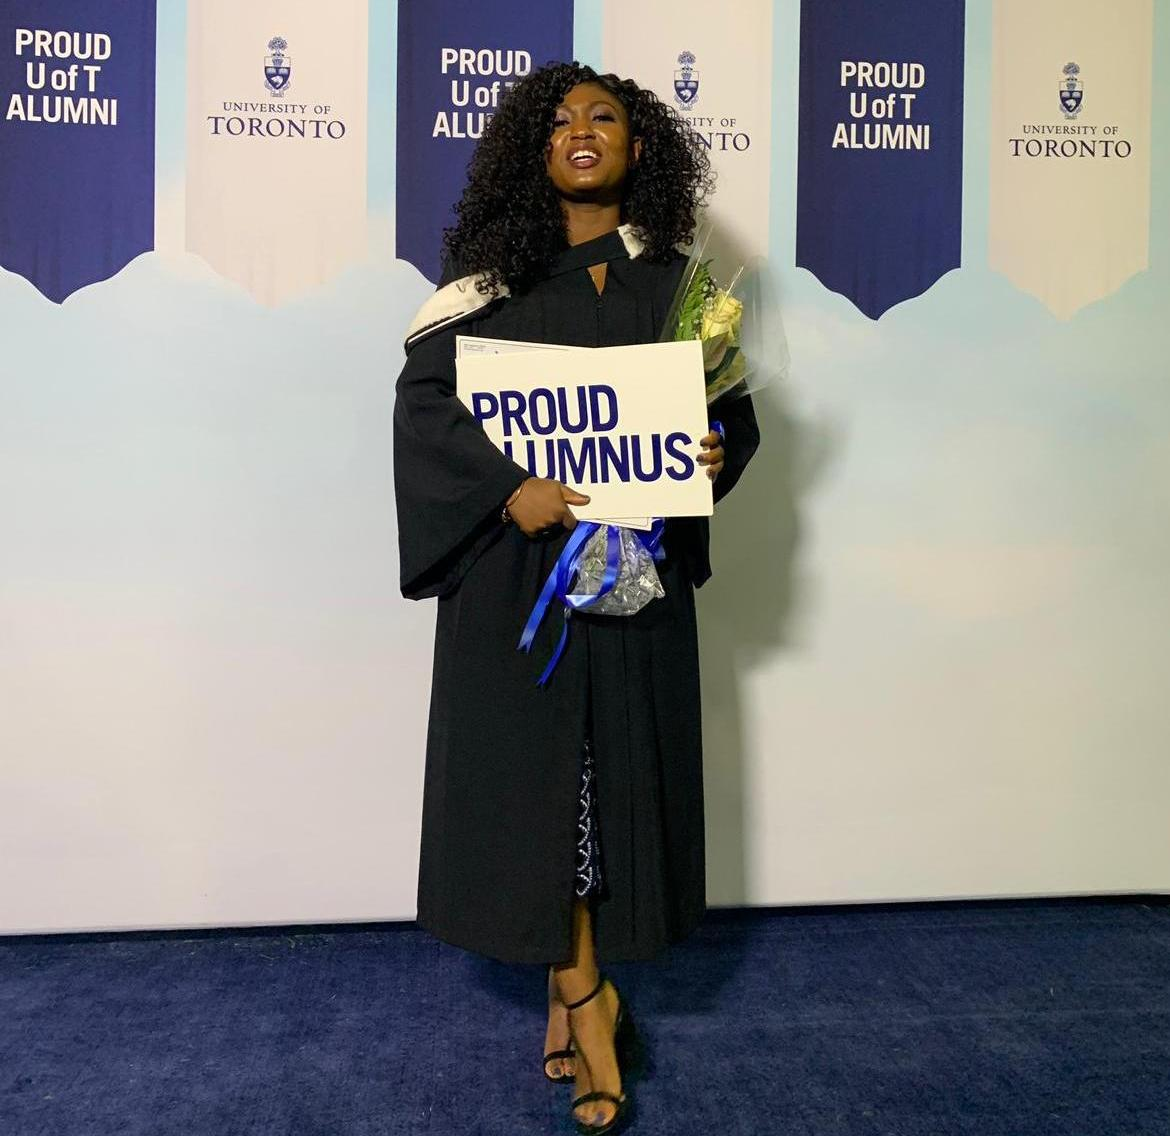 Miss Onyemowo Jane Odah's First Sip From the Cup of Knowledge